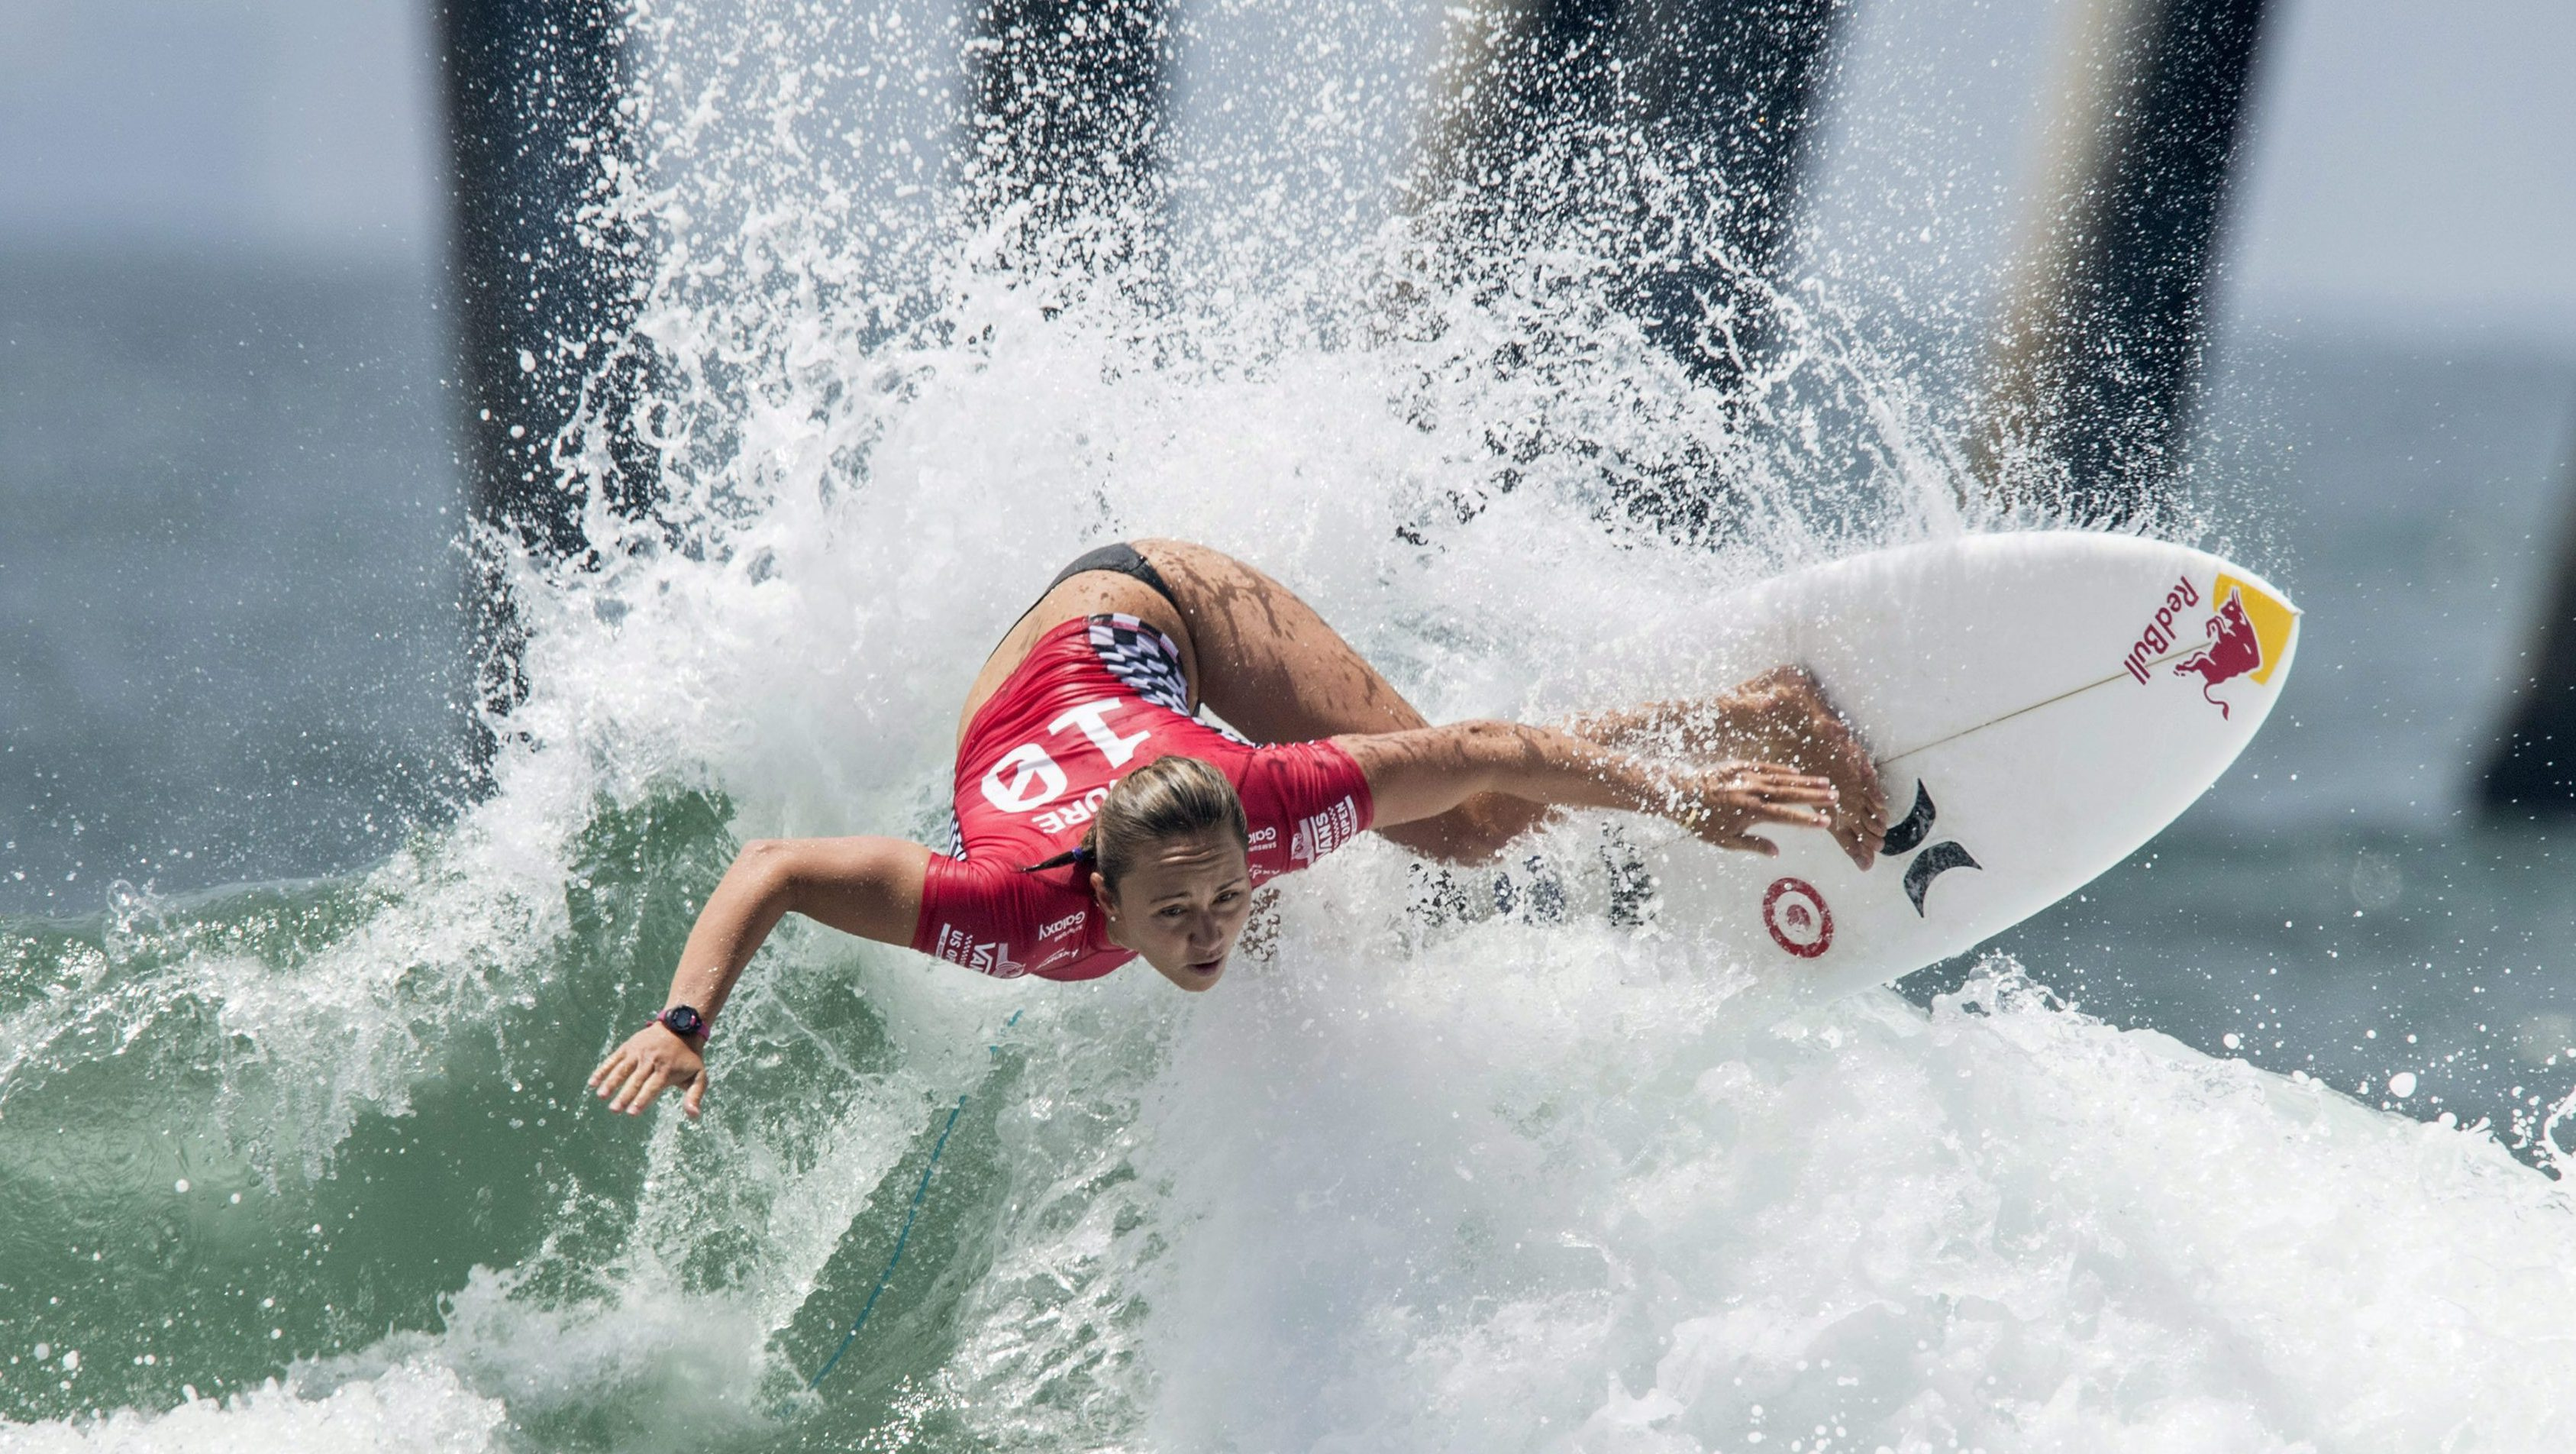 Carissa Moore surfing during a competition